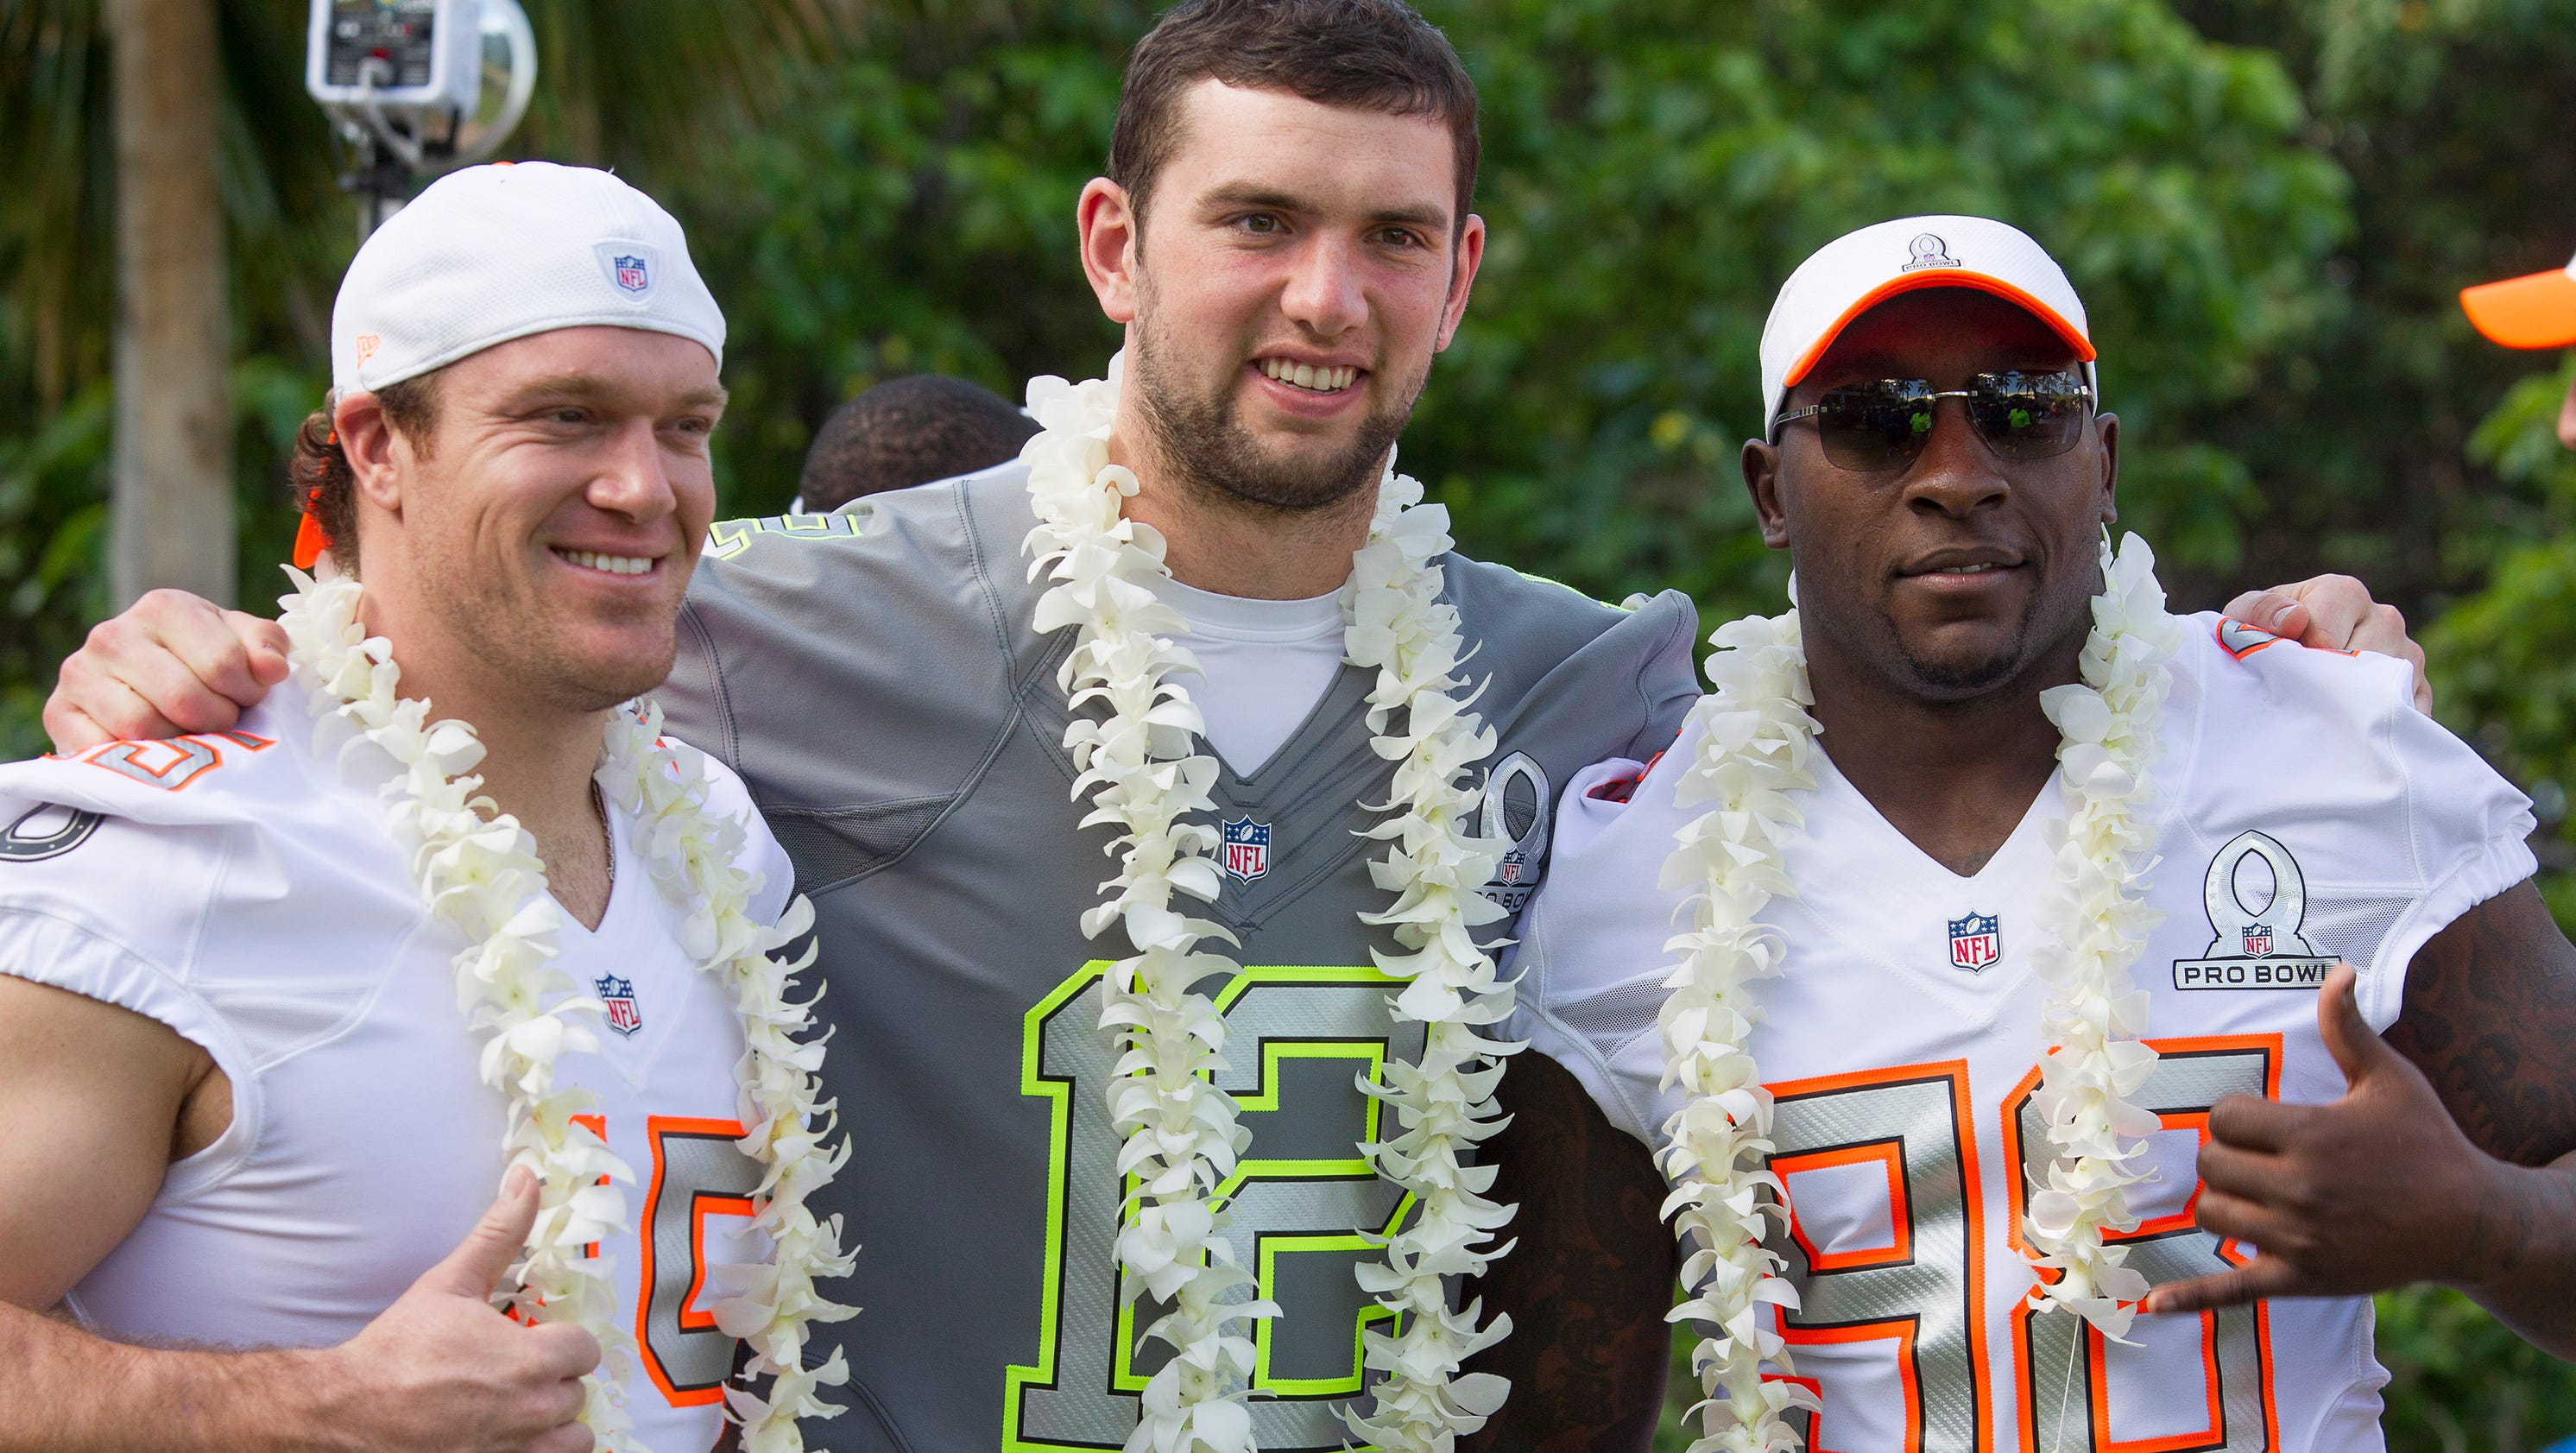 Colts players, coaches enjoy time at NFL Pro Bowl